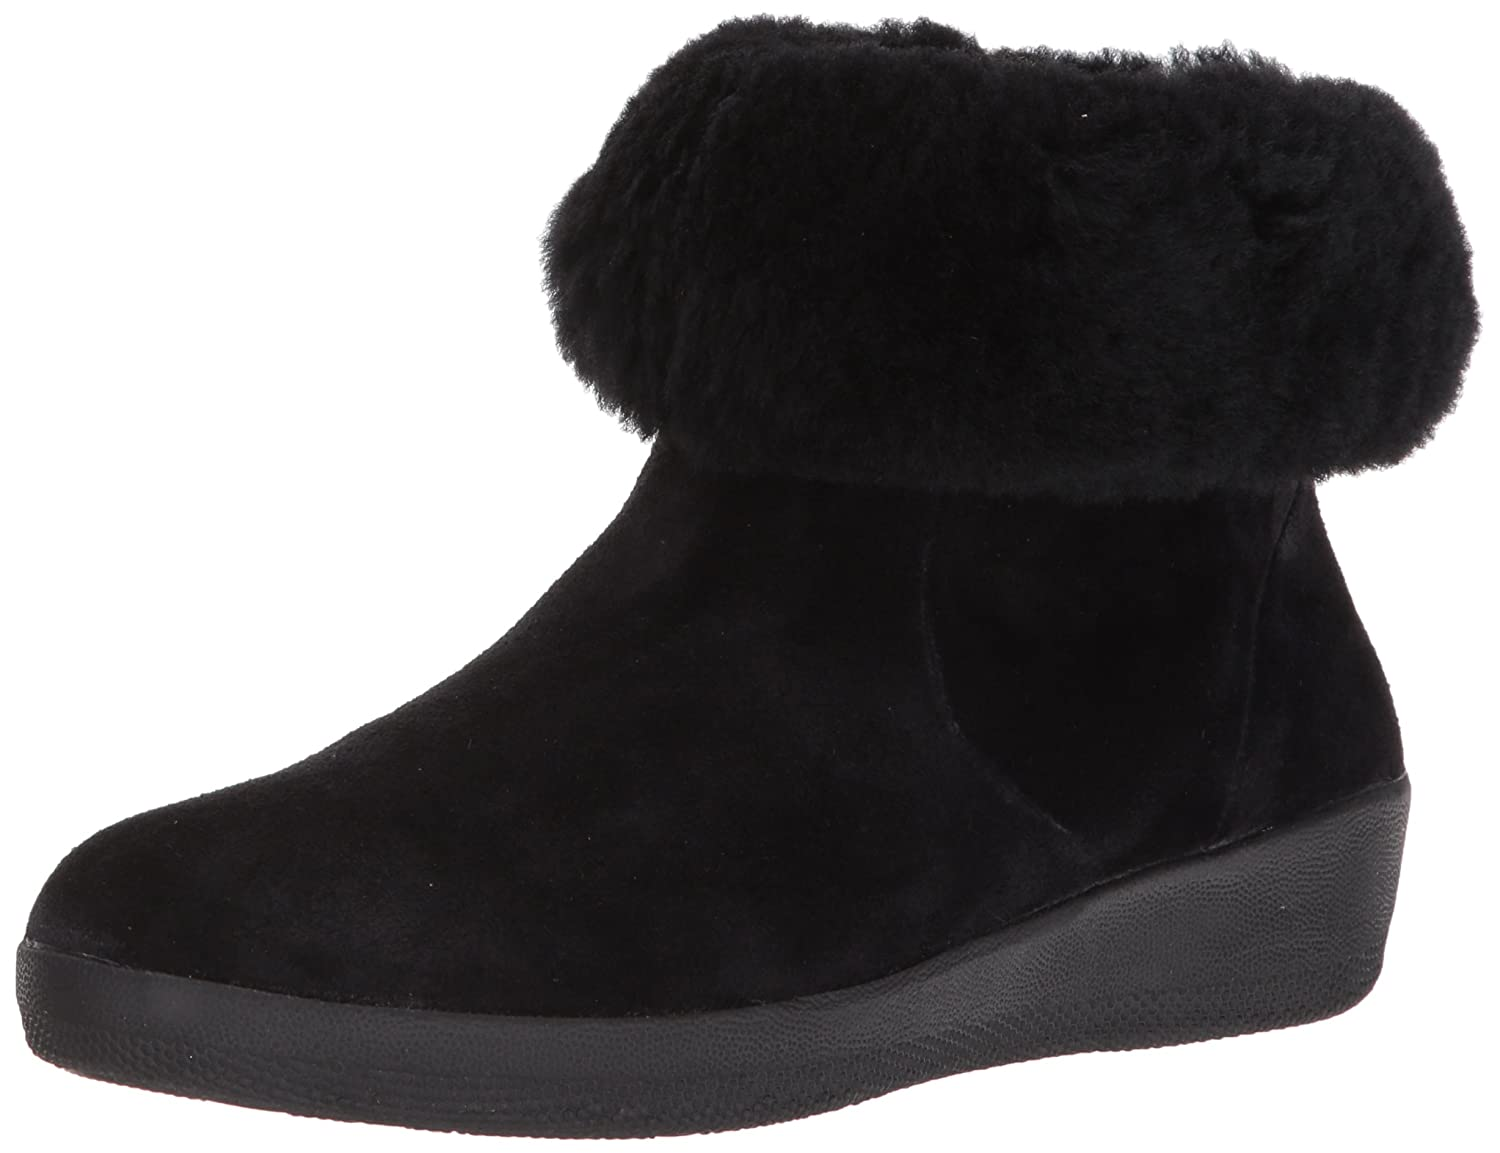 Vintage Boots- Buy Winter Retro Boots FitFlop Womens Boot Skatebootie $159.87 AT vintagedancer.com